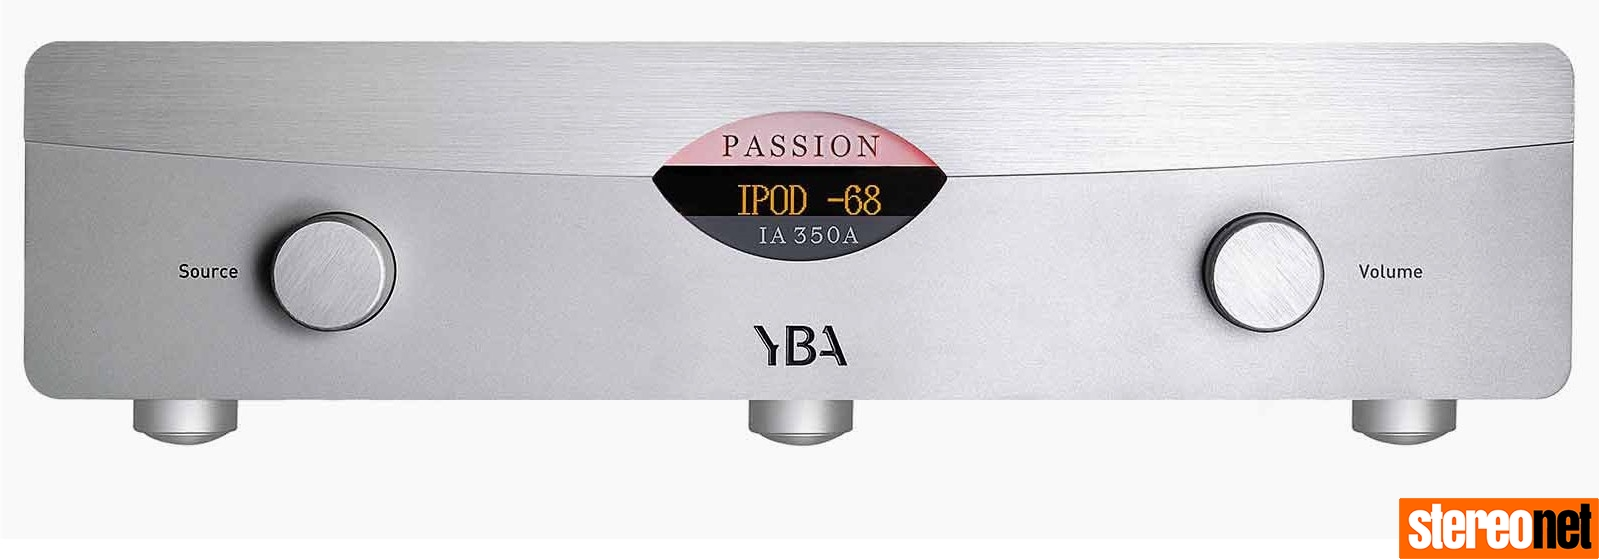 YBA Passion IA350A Integrated Amplifier Review